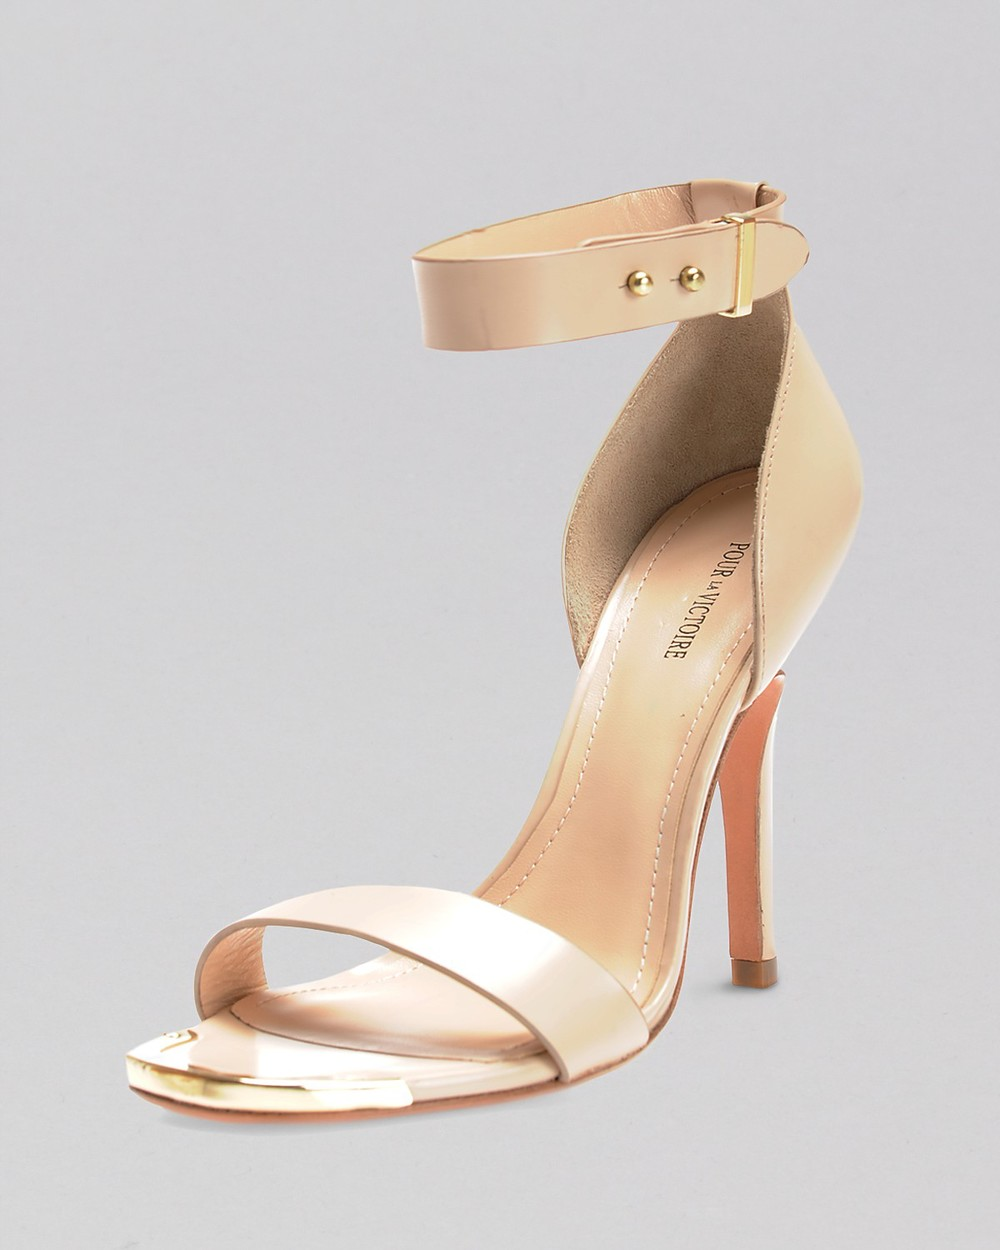 Pour La Victoire  Open Toe Ankle Strap Sandals - Yaya High Heel $175  www.bloomingdales.com